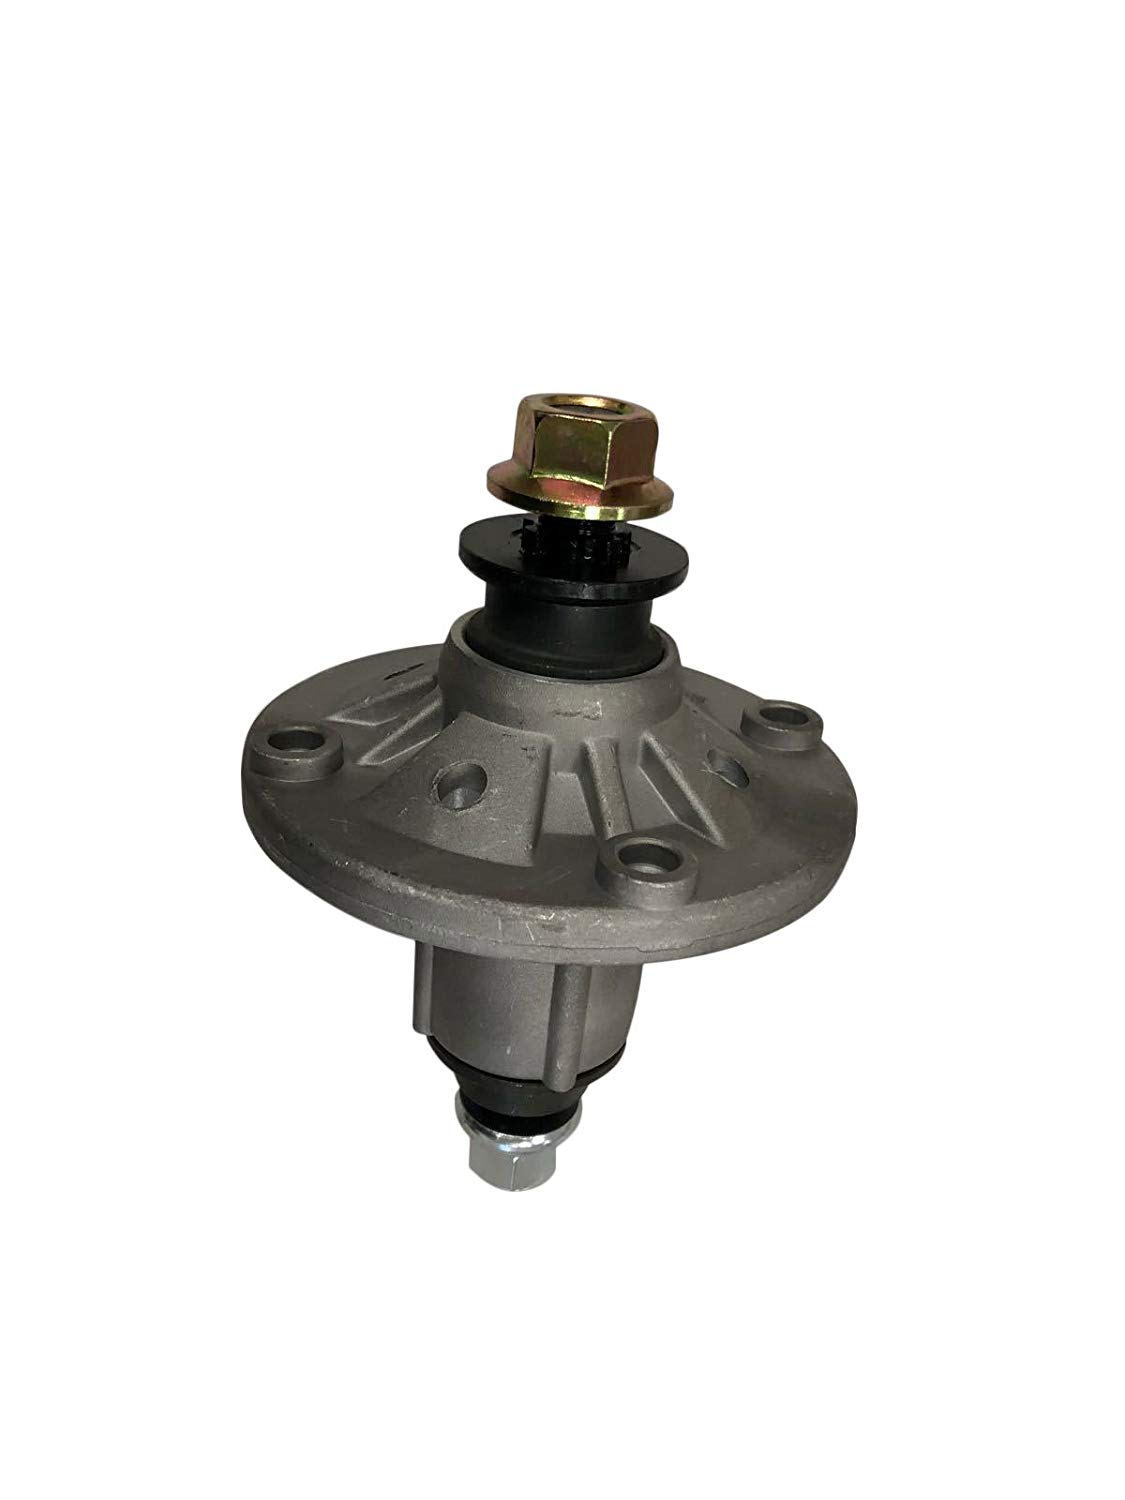 Get Quotations · New John Deere Spindle Assembly LA105 LA115 LA125 LA135  LA145 LA155 LA165 LA175